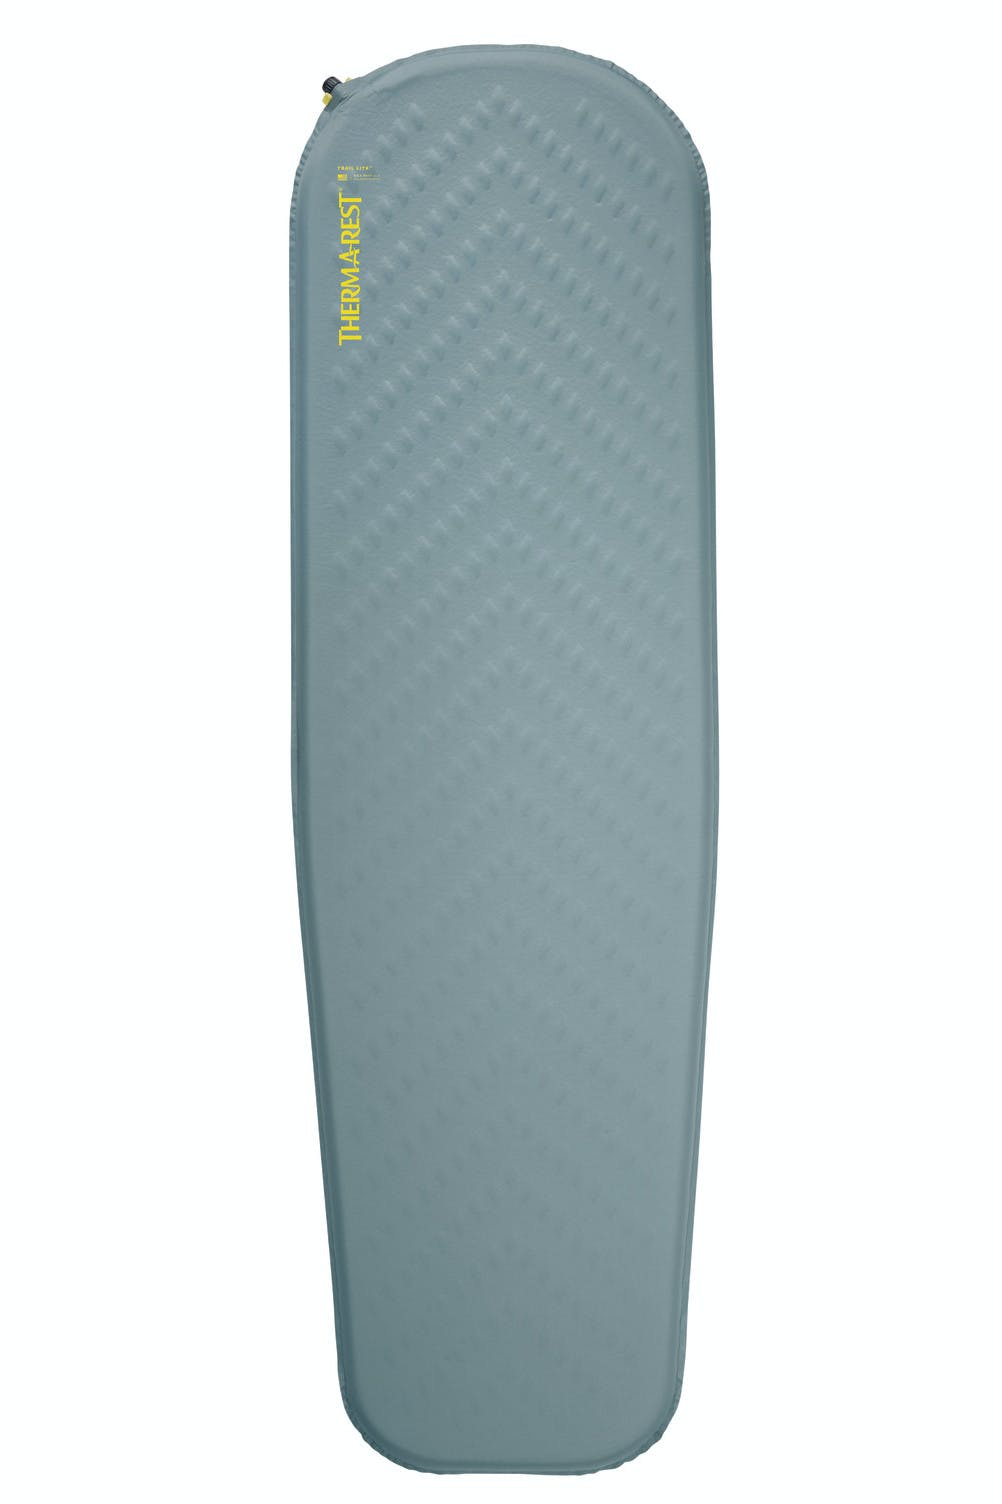 THERMAREST - TRAIL LITE PAD - LARGE - Trooper